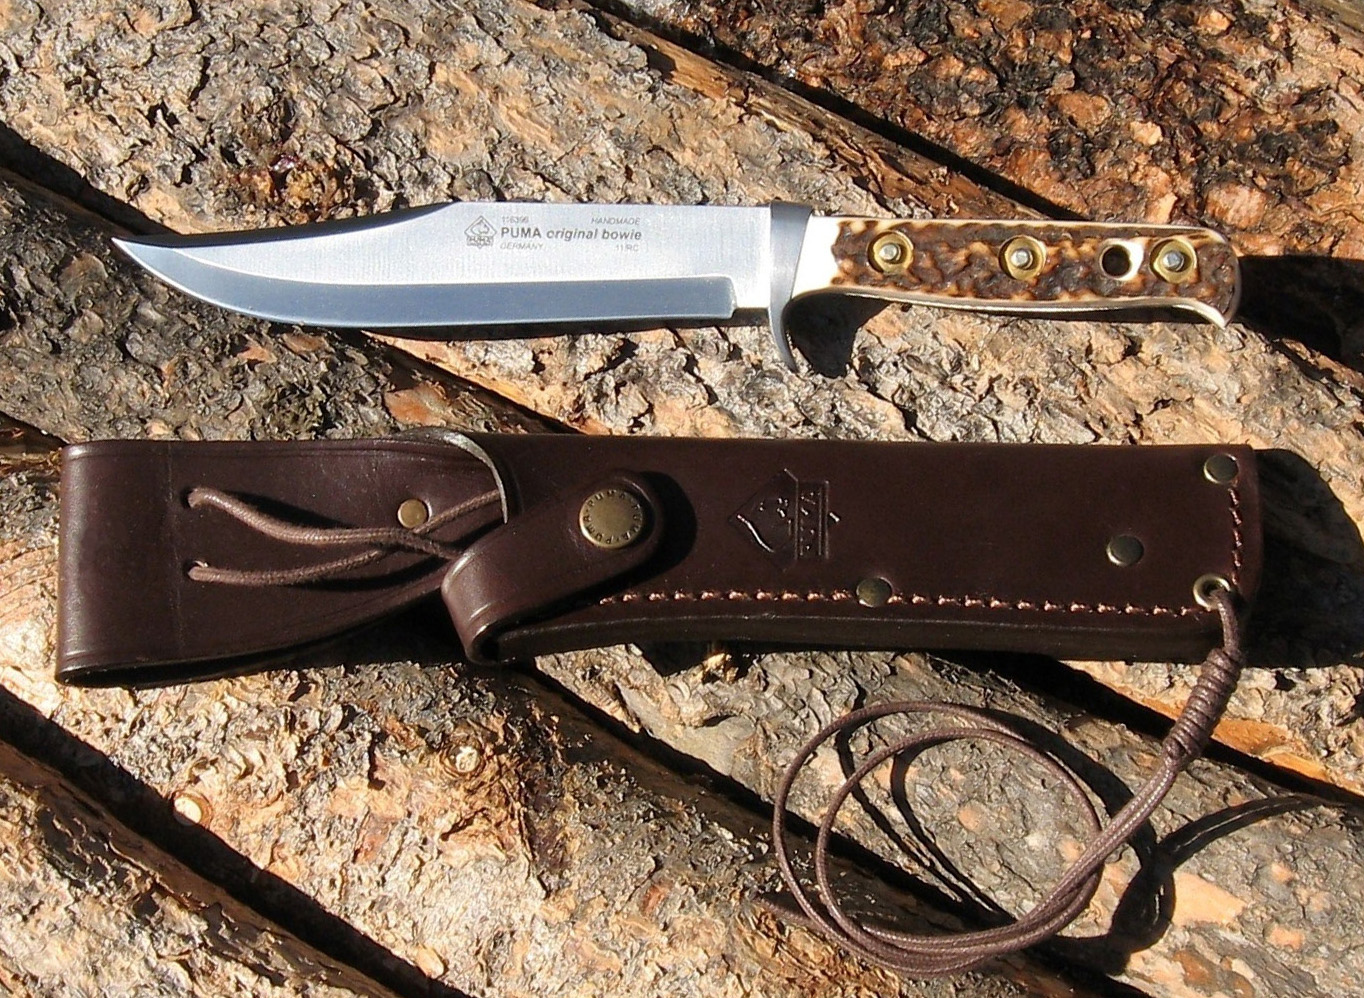 Rocky Mountain Bushcraft: REVIEW: The Puma Bowie Knife- For The